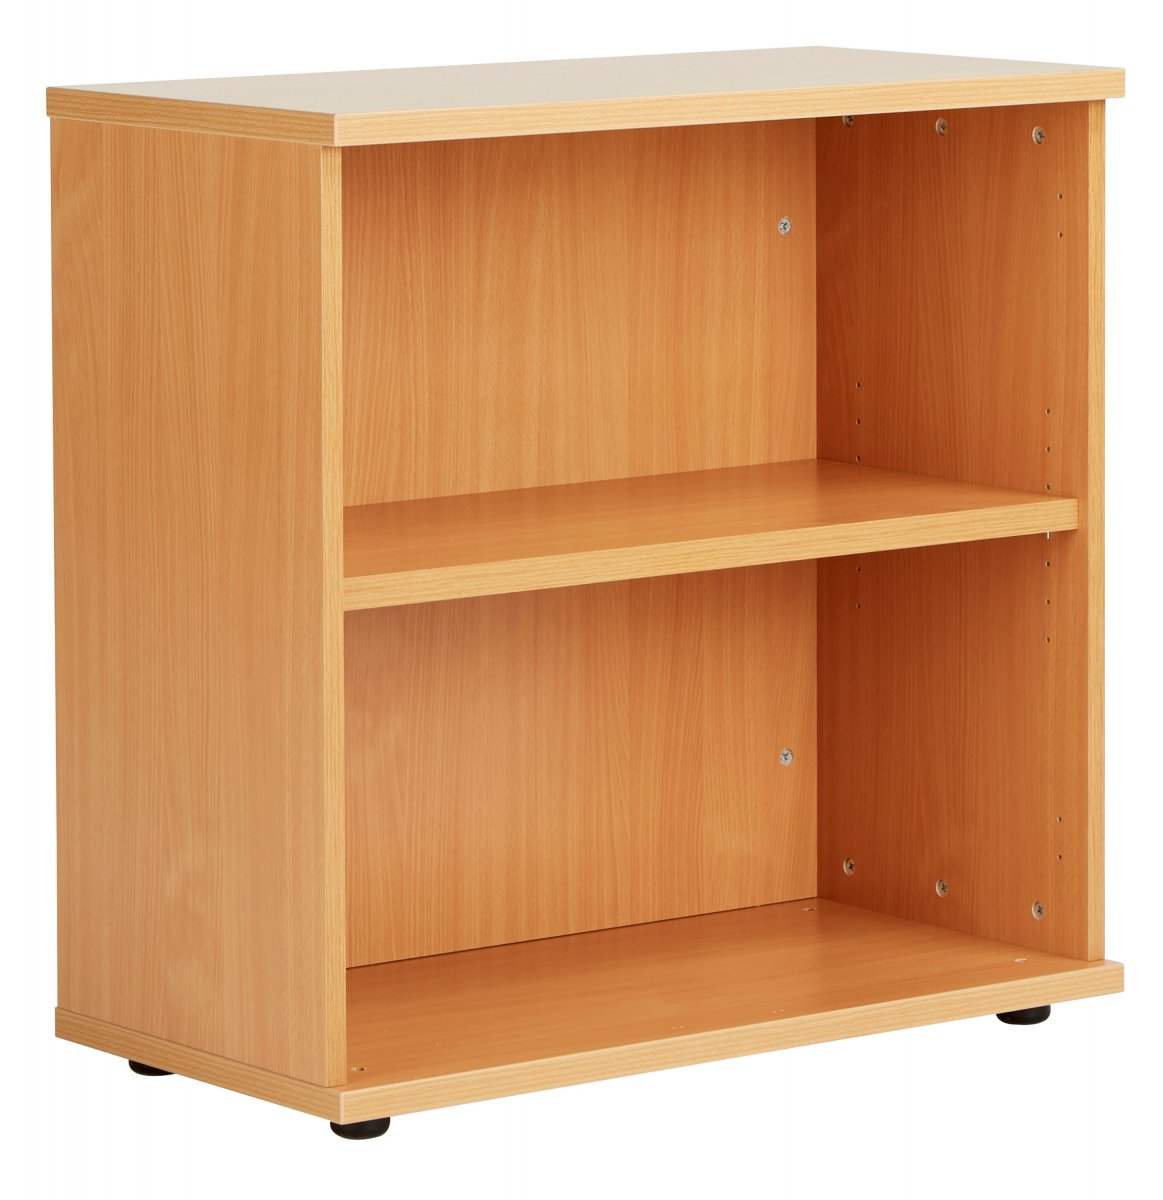 Fraction Plus 80 Bookcase inc. 1 Shelf - Beech